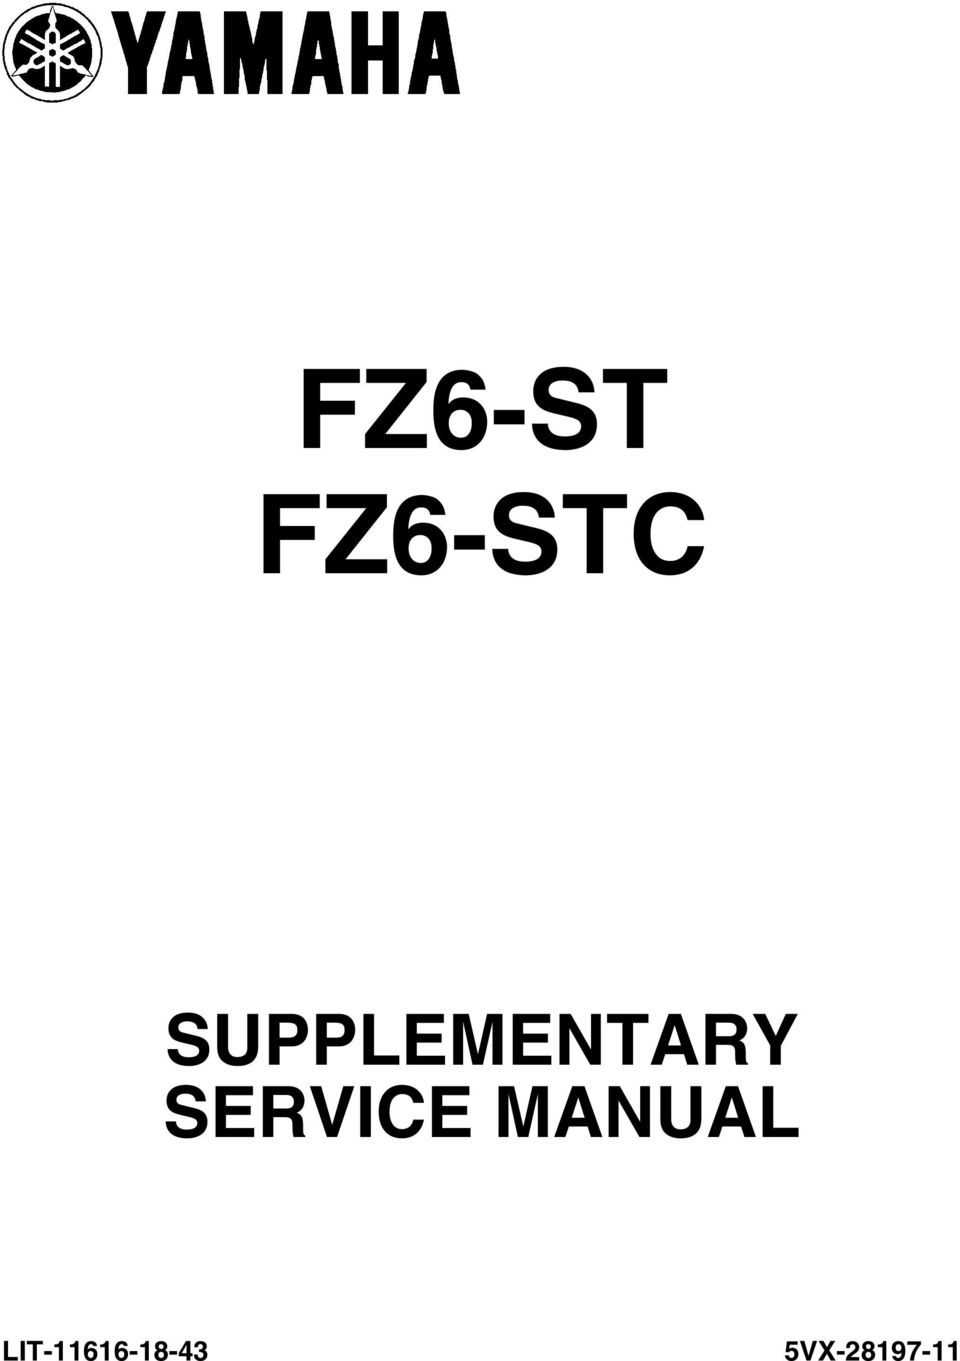 hight resolution of 2 foreword this supplementary service manual has been prepared to introduce new service and data for the fz6 st fz6 stc for complete service information